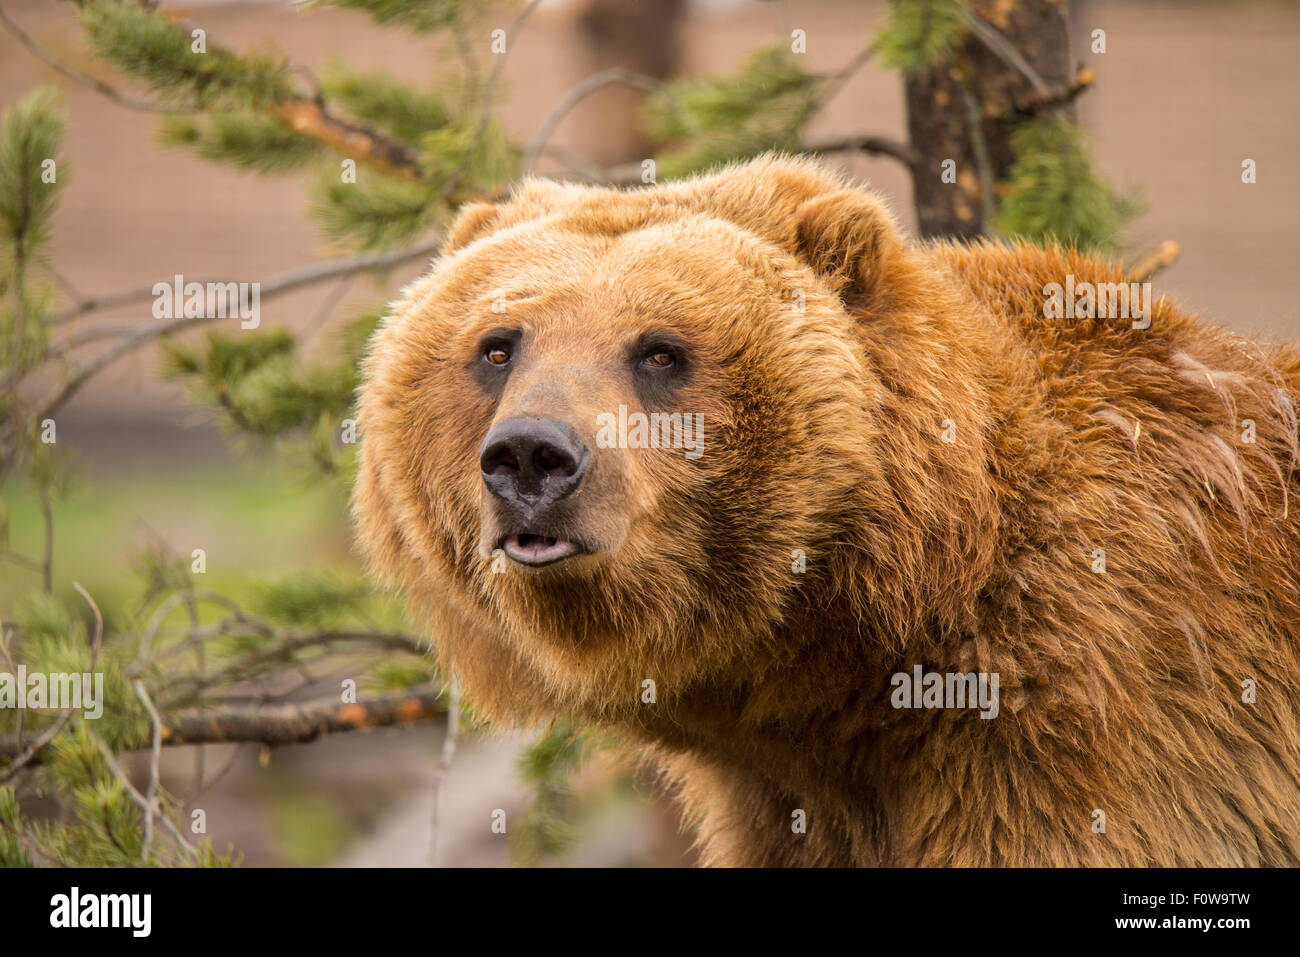 Young Alaska Grizzly Bear in rehabilitation program at Bear World, Grizzly & Wolf Discovery Center, West Yellowstone, - Stock Image